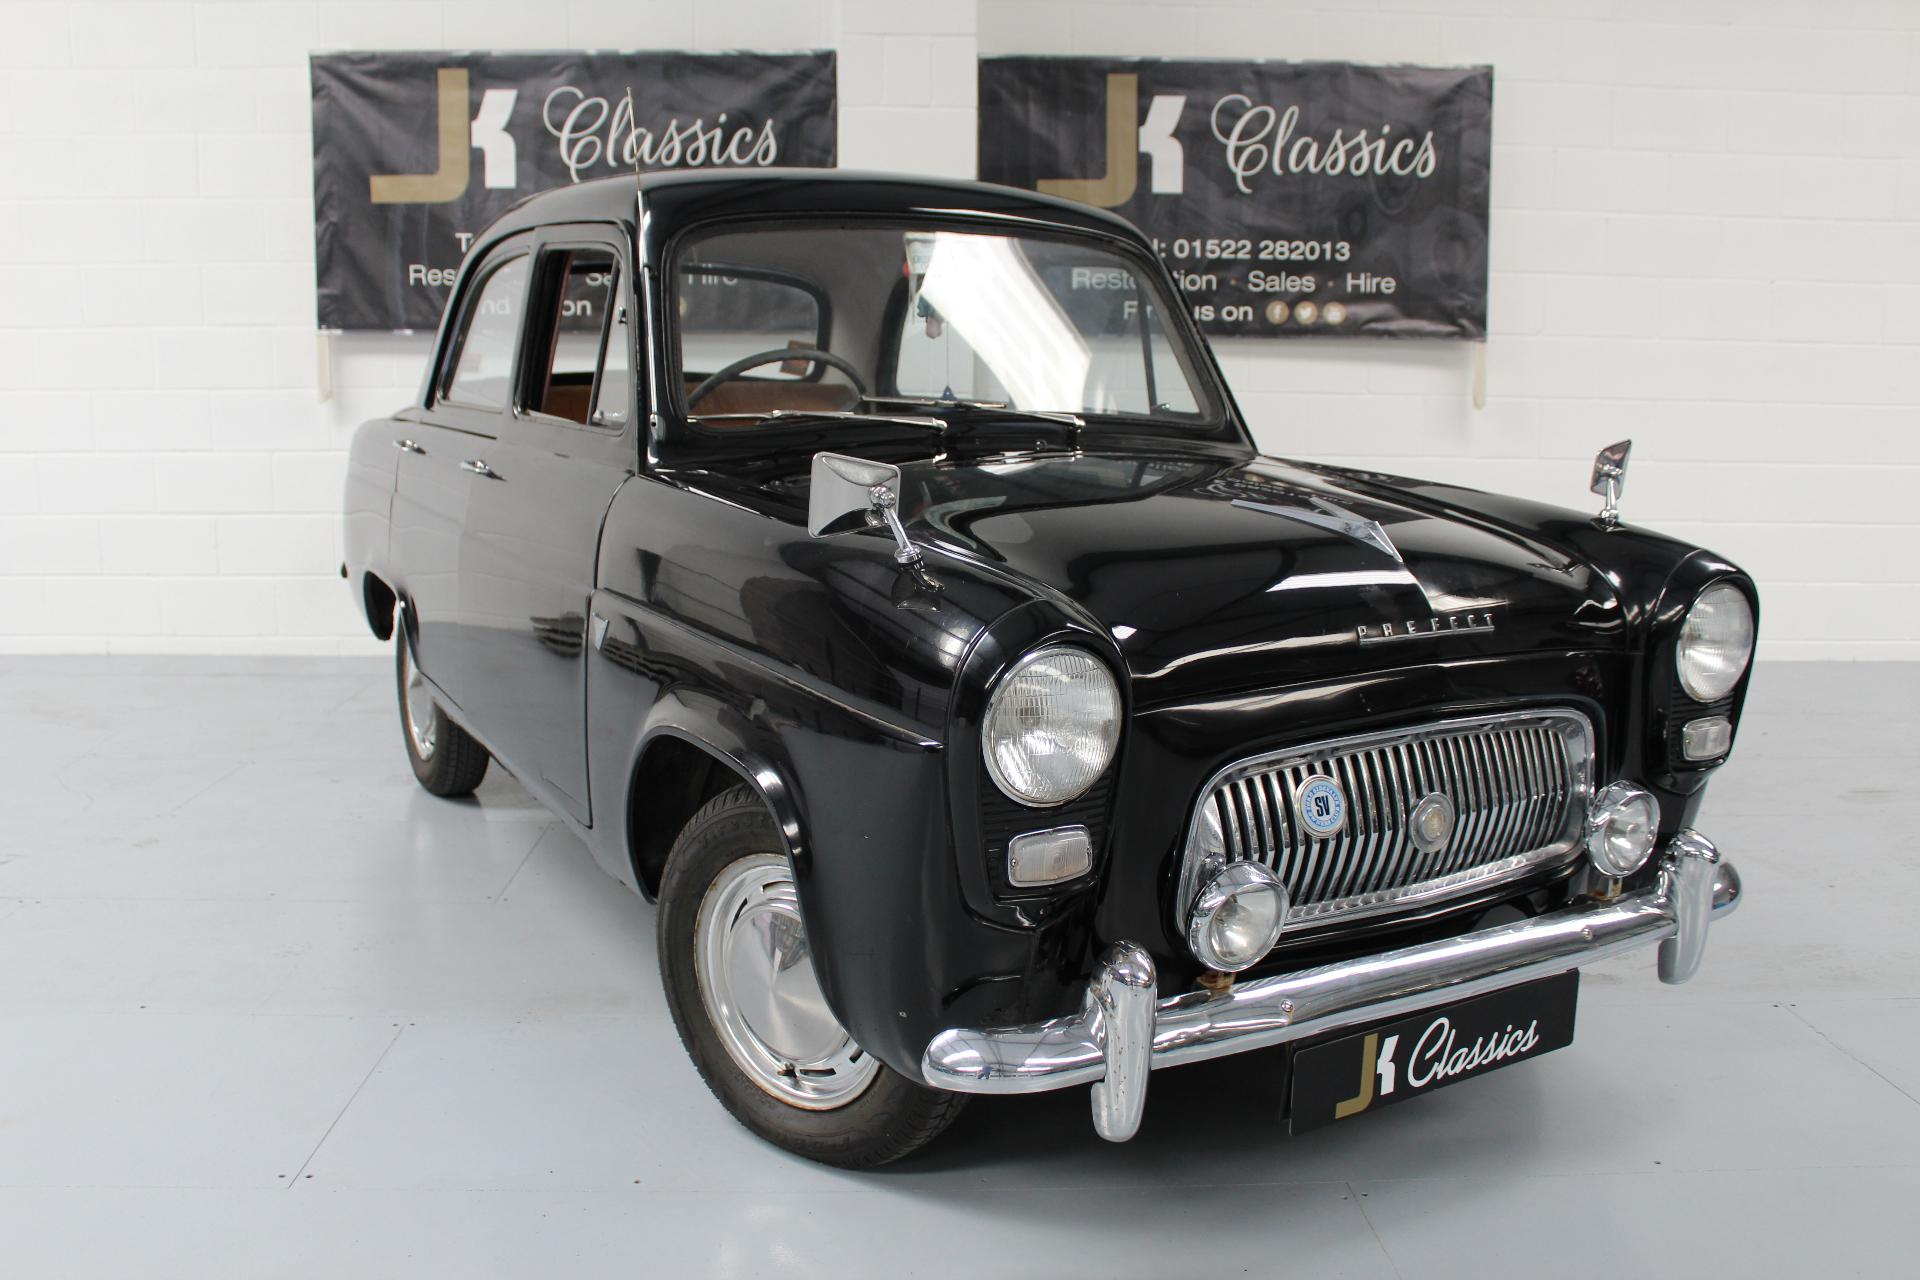 1959 ford prefect 100e classic in black for sale in lincoln lincolnshire